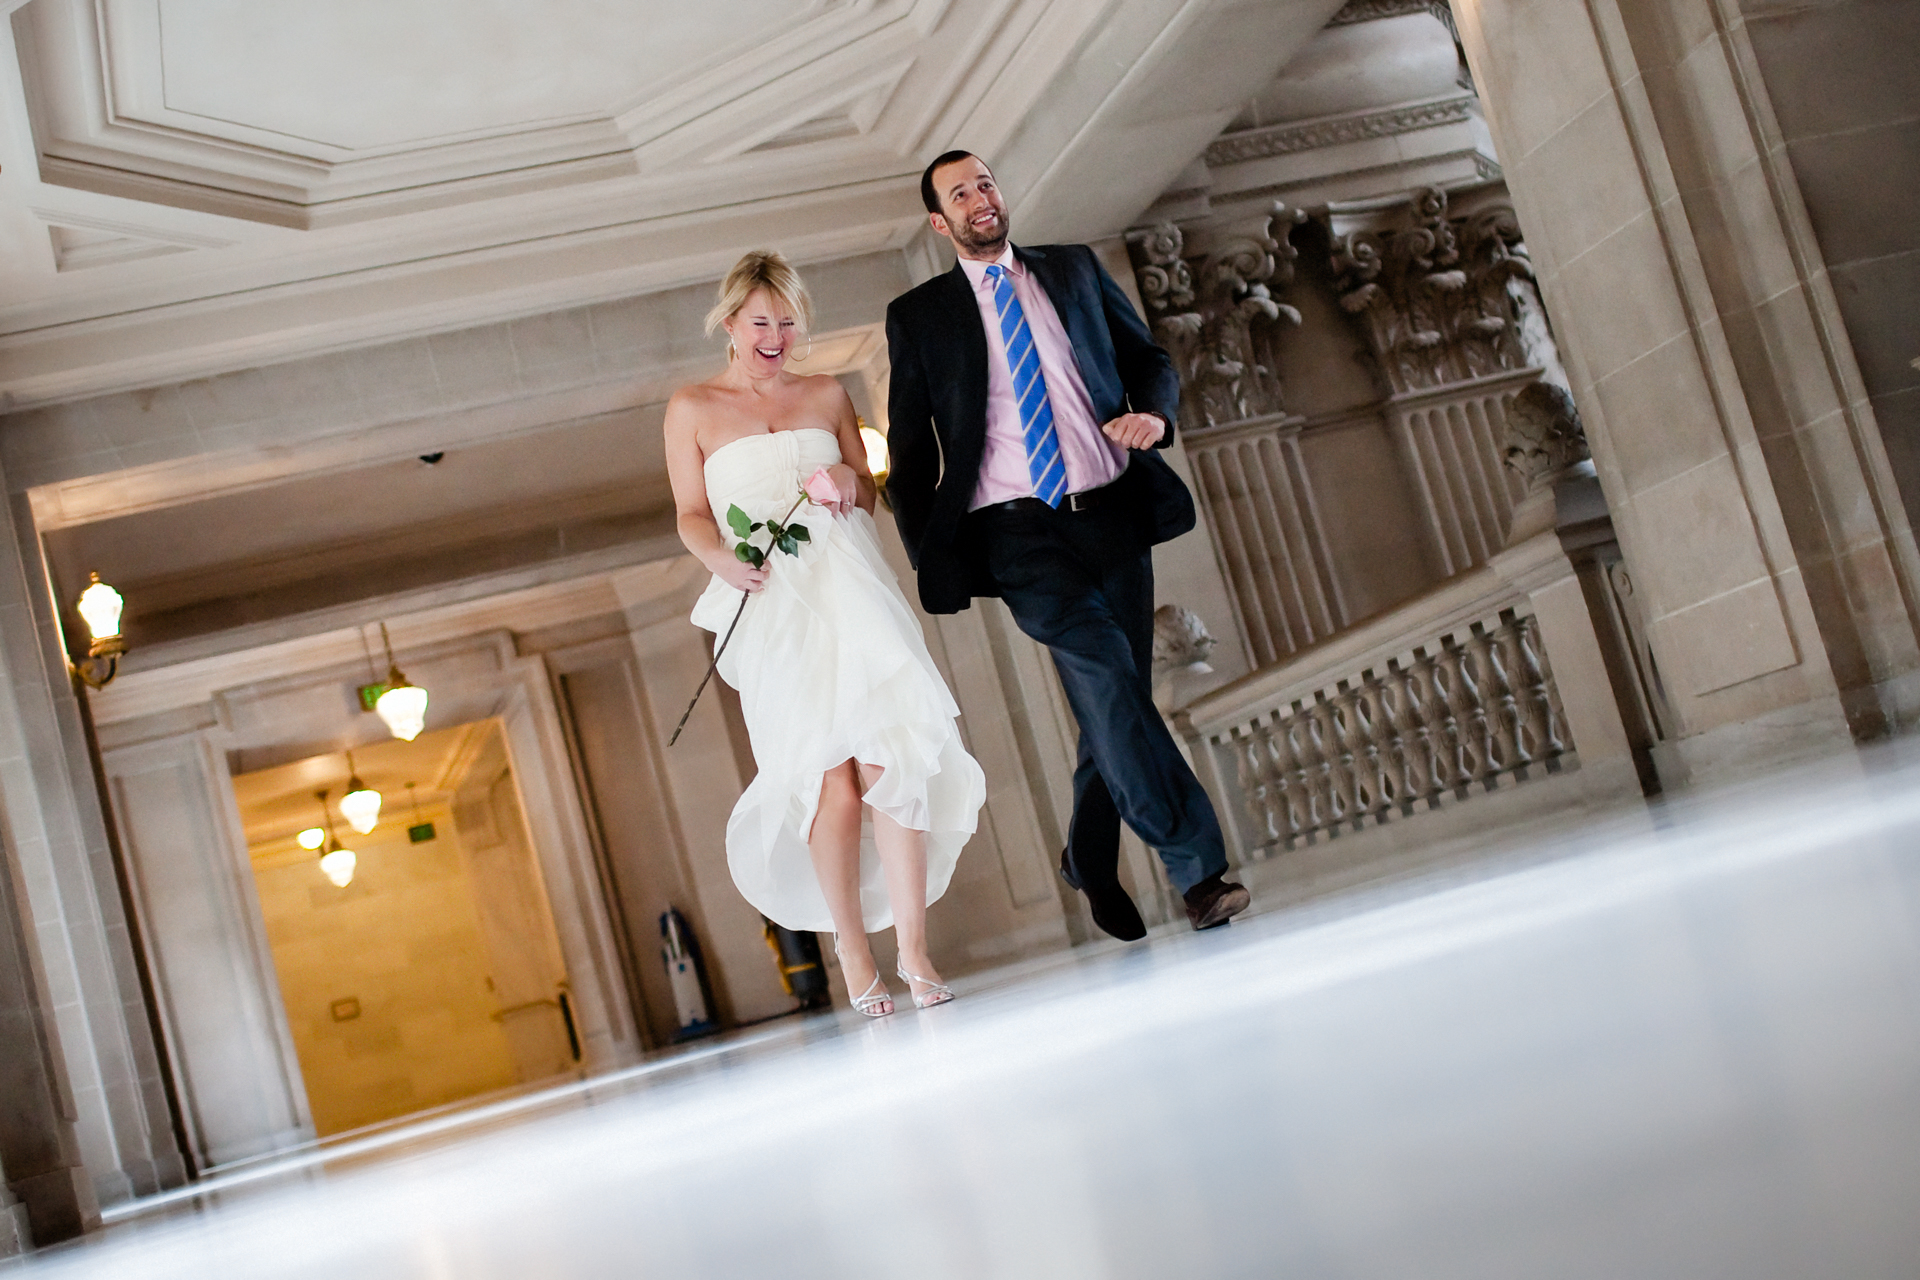 San Francisco, California City Hall Elopement Photographers | Overflowing with joy, the couple can't wait to get out of city hall and start their married life together